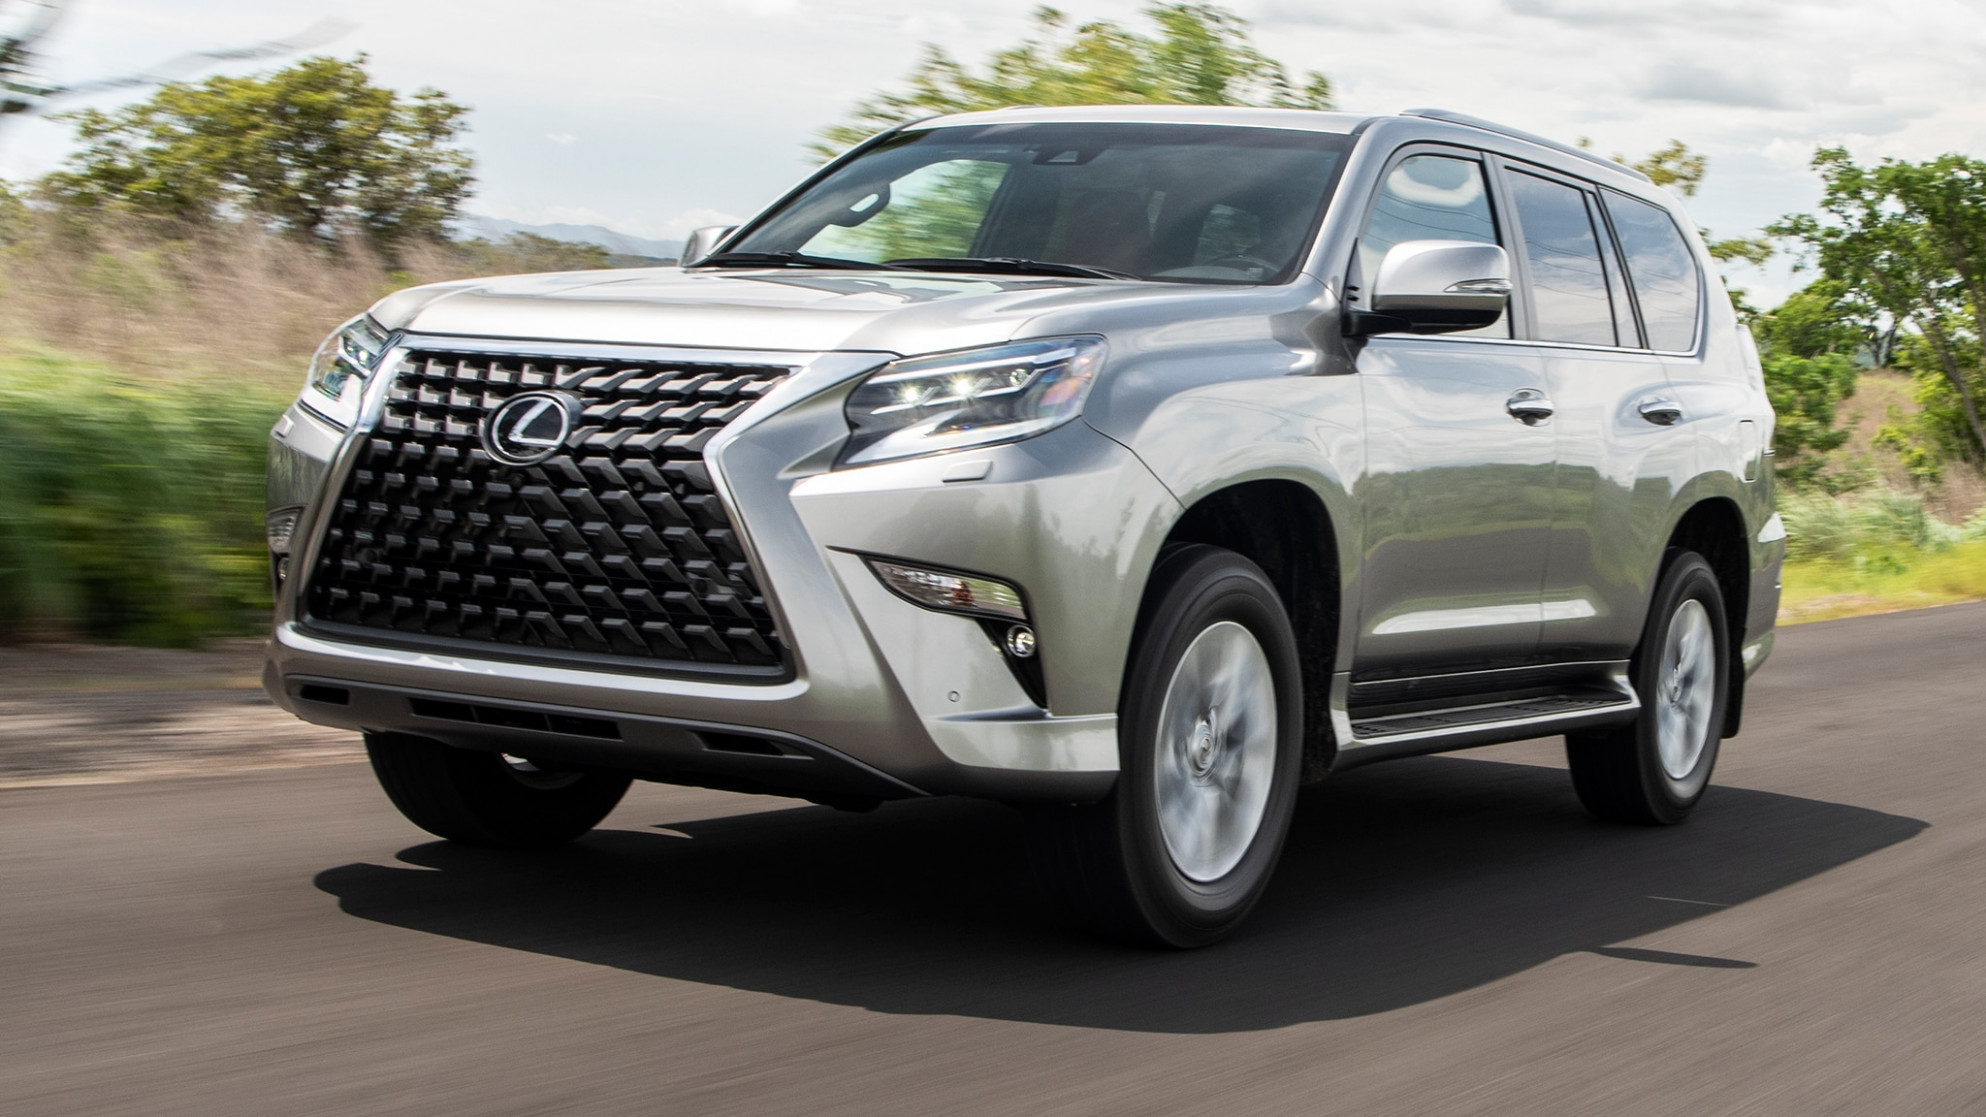 5 Lexus GX 5 Review: Big Grille, Small Updates | 2020 Lexus Gx 460